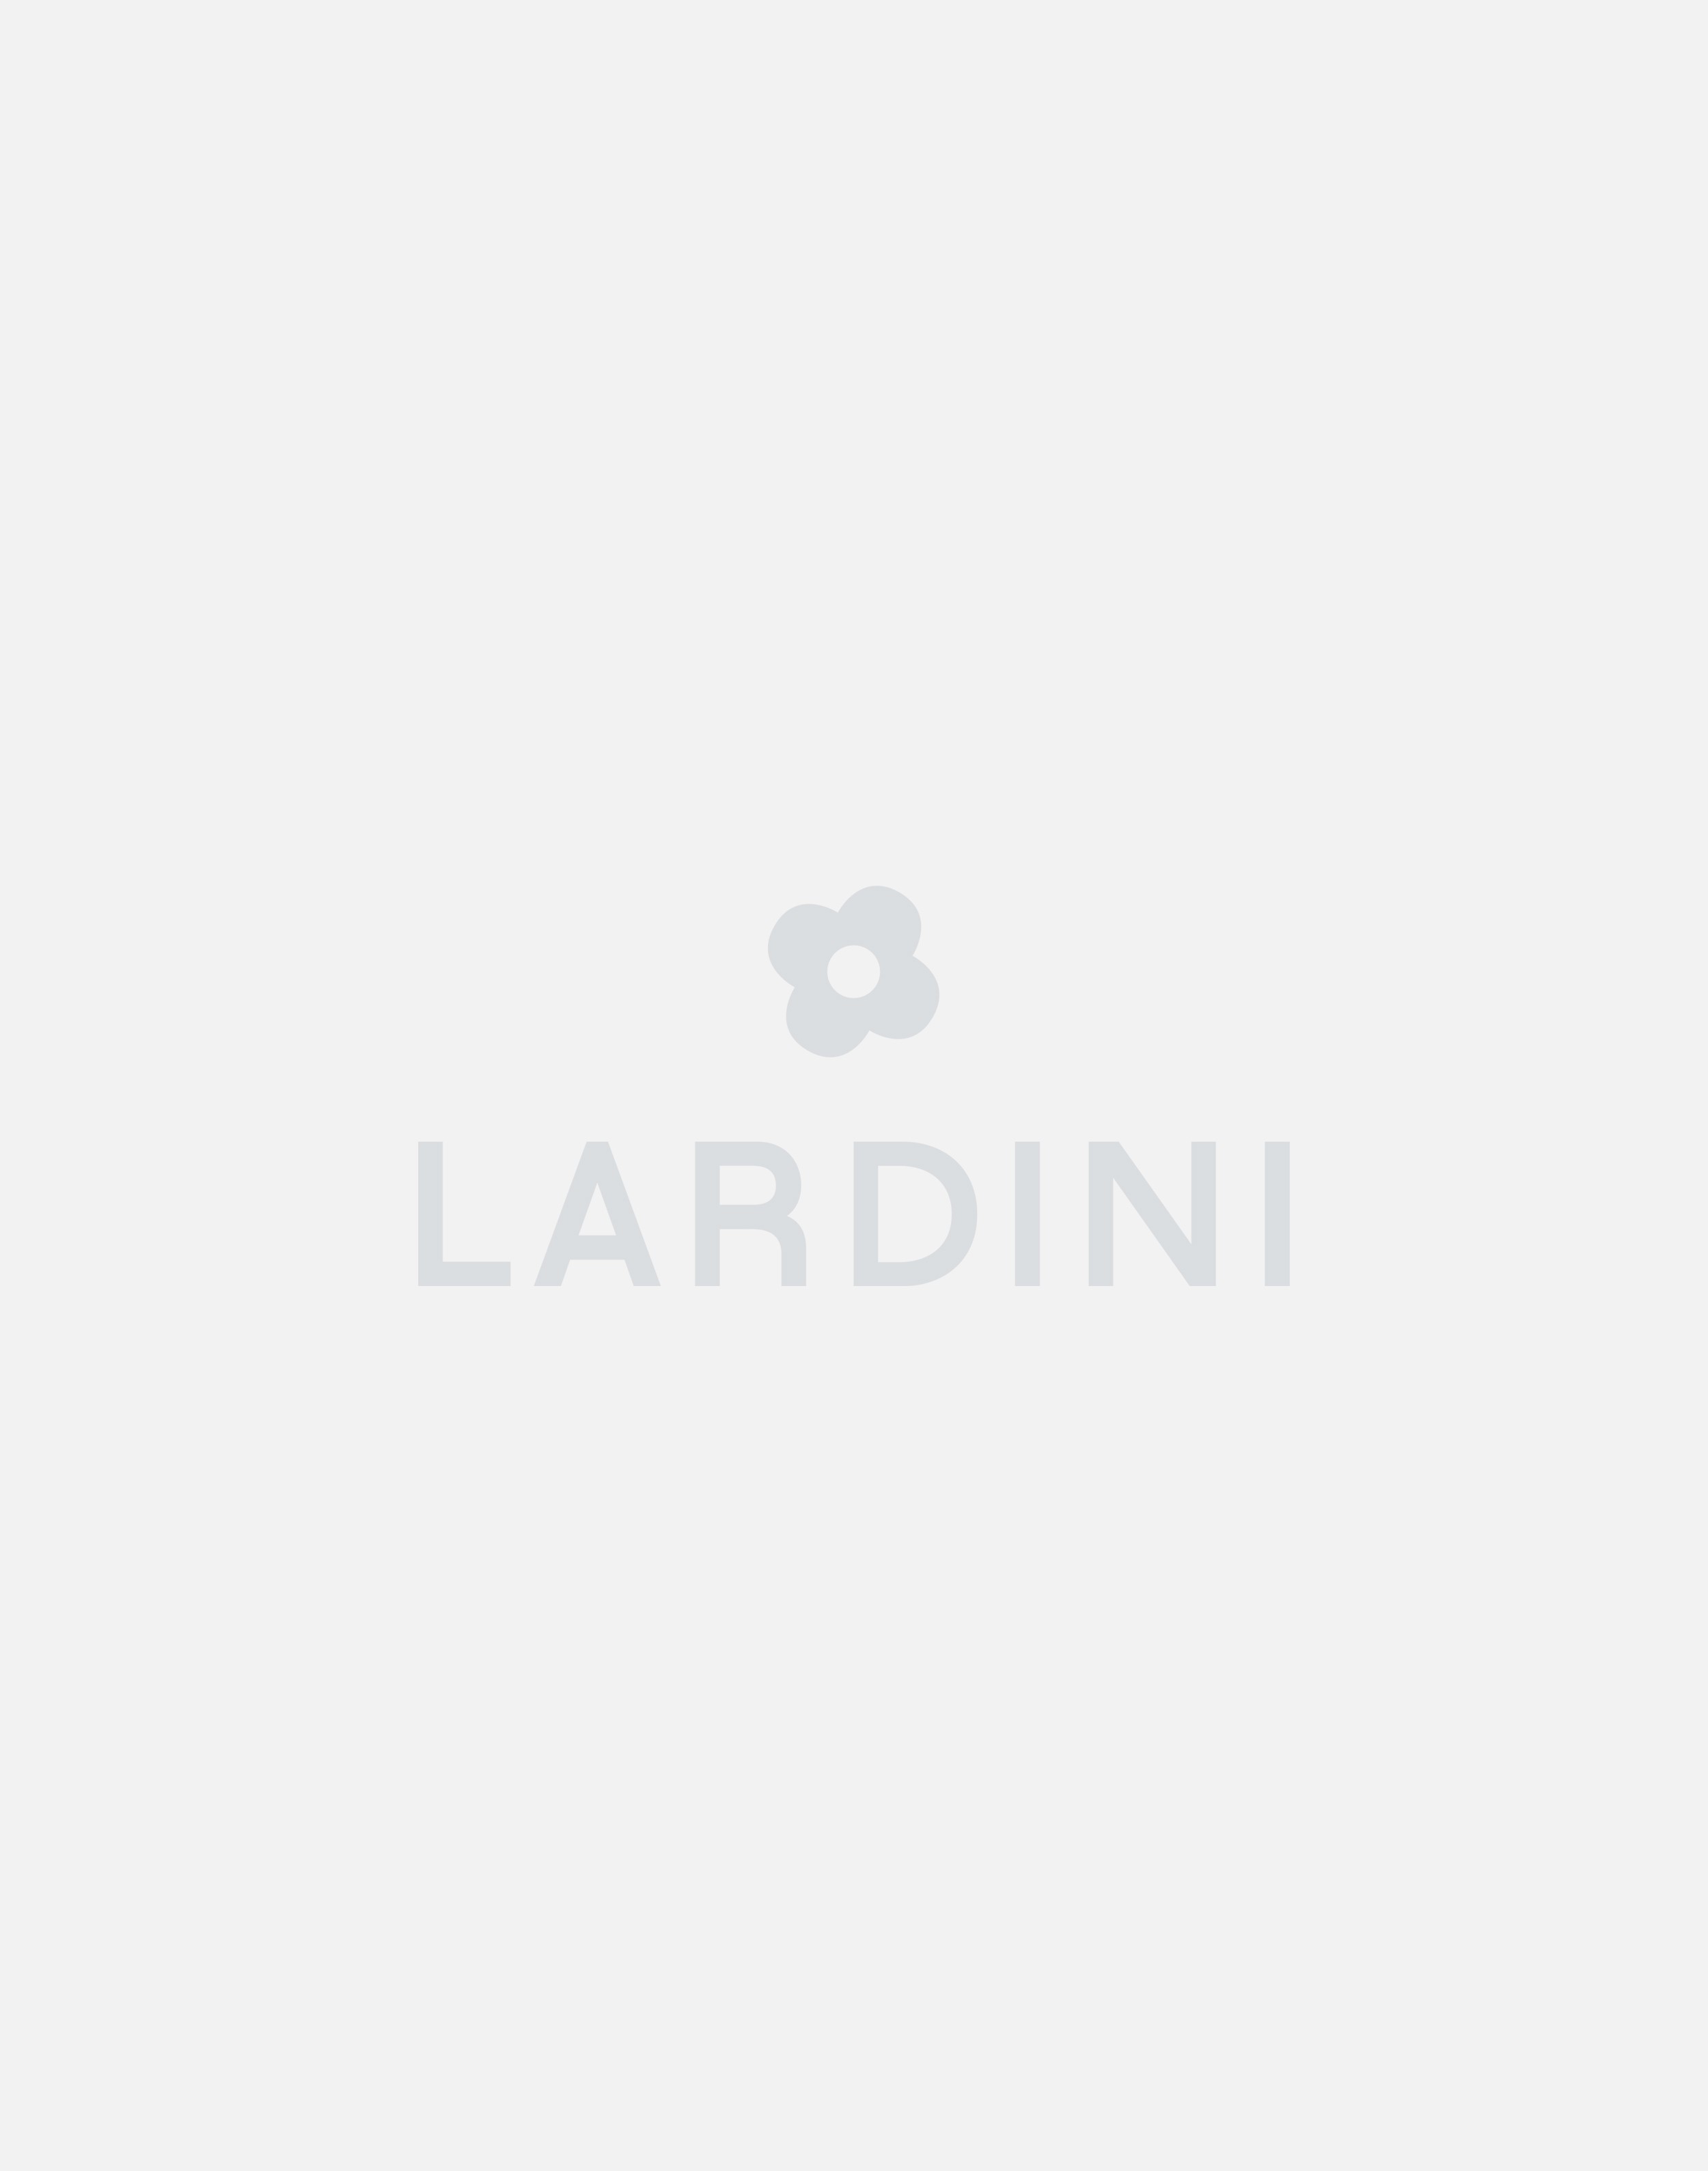 Two-pleat trousers - Luigi Lardini capsule